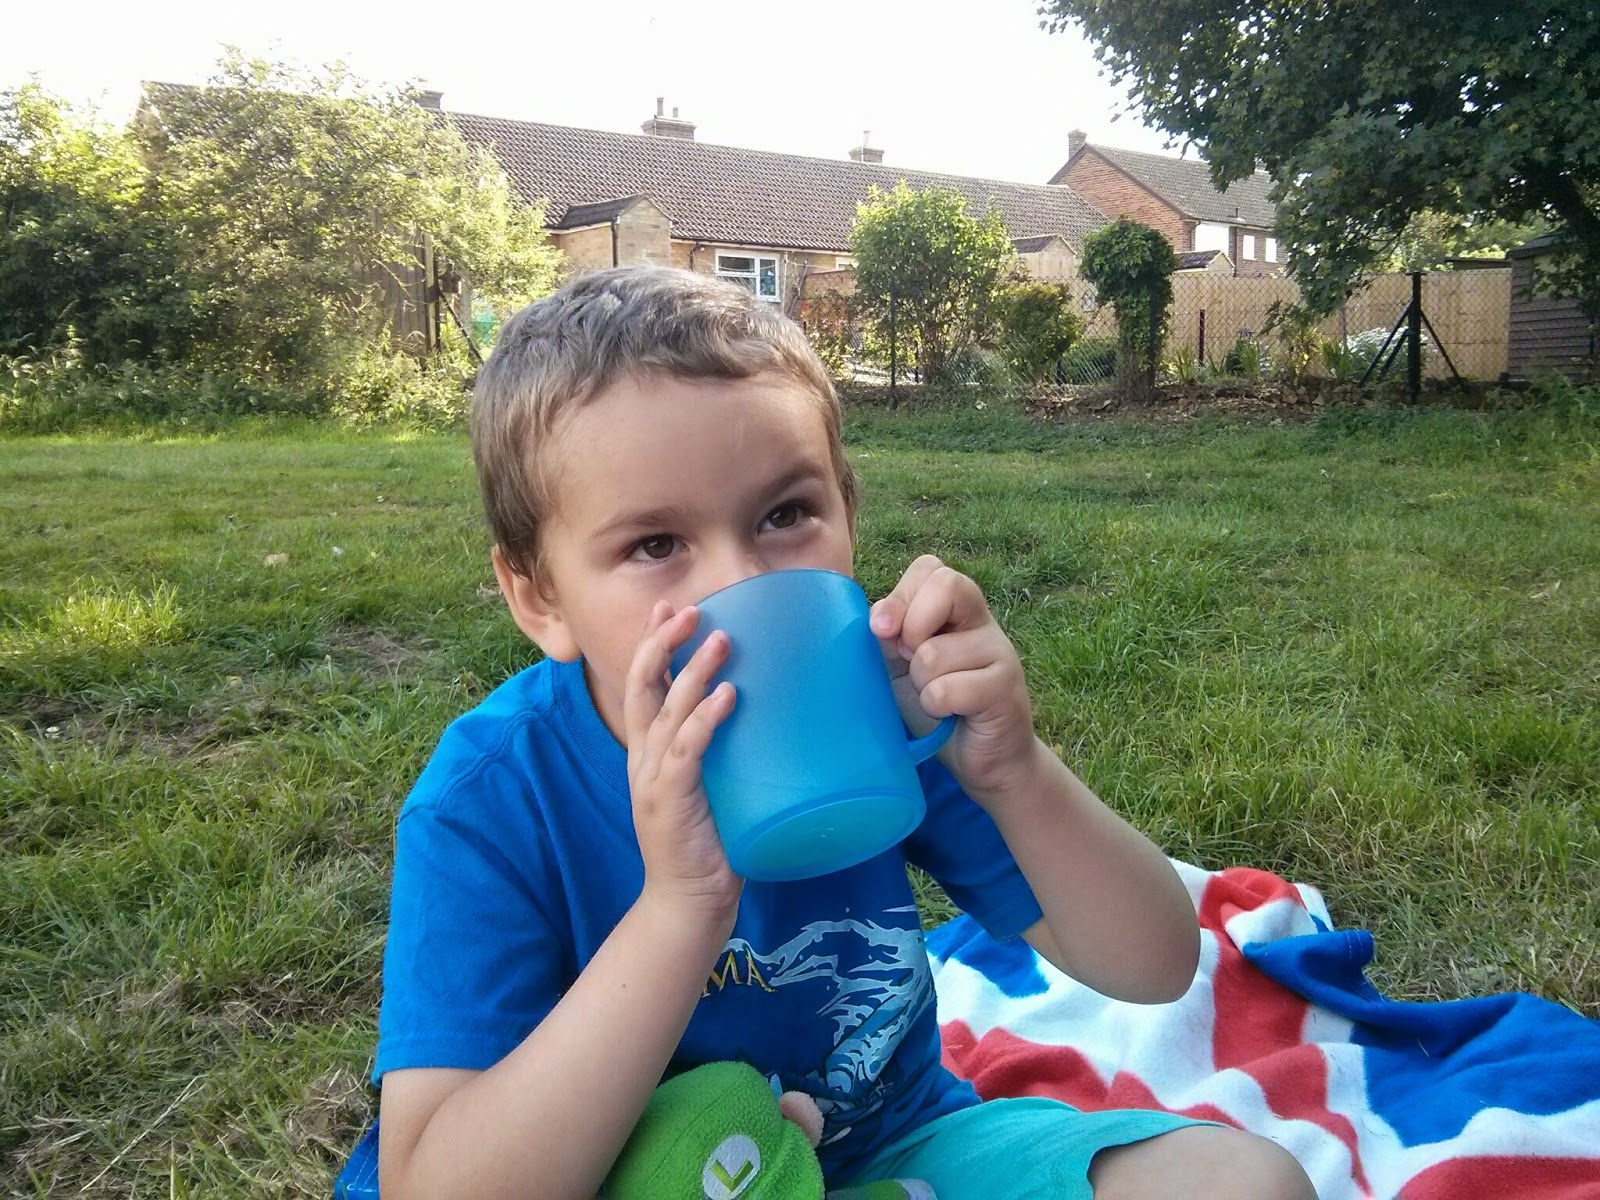 Big Boy drinking still lemonade